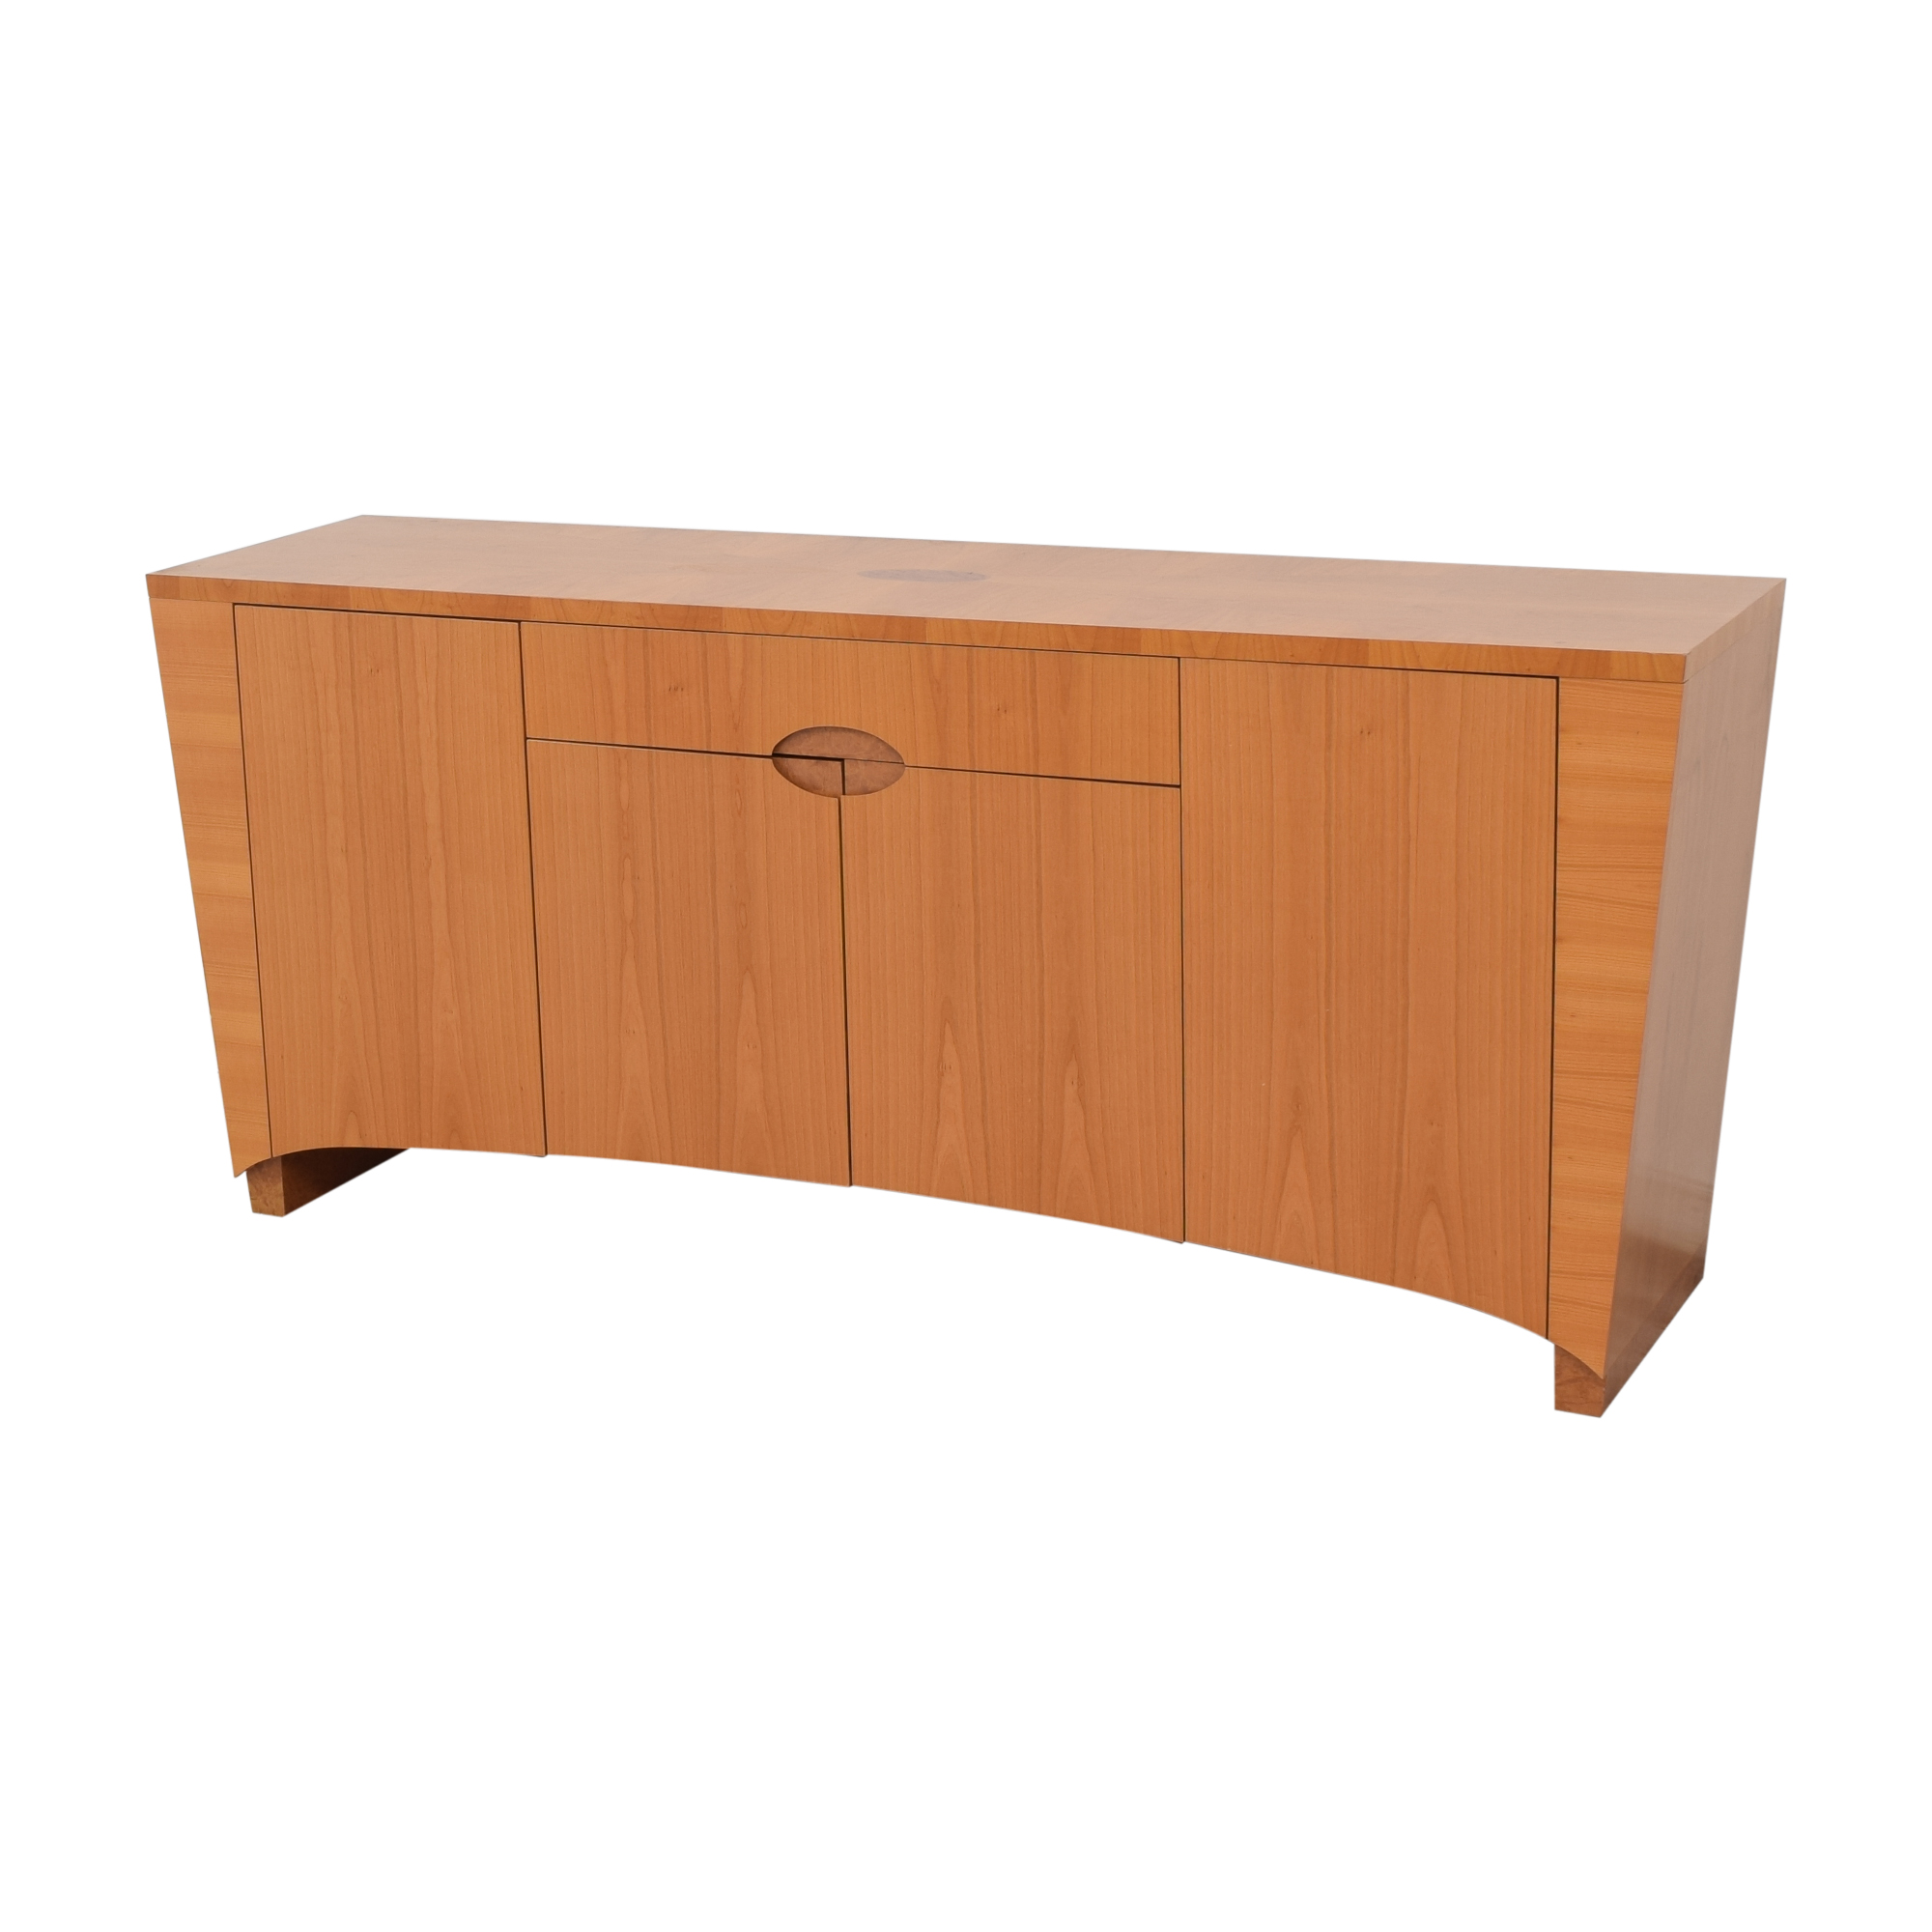 Excelsior Designs Excelsior Designs Italian Modern Style Buffet ma